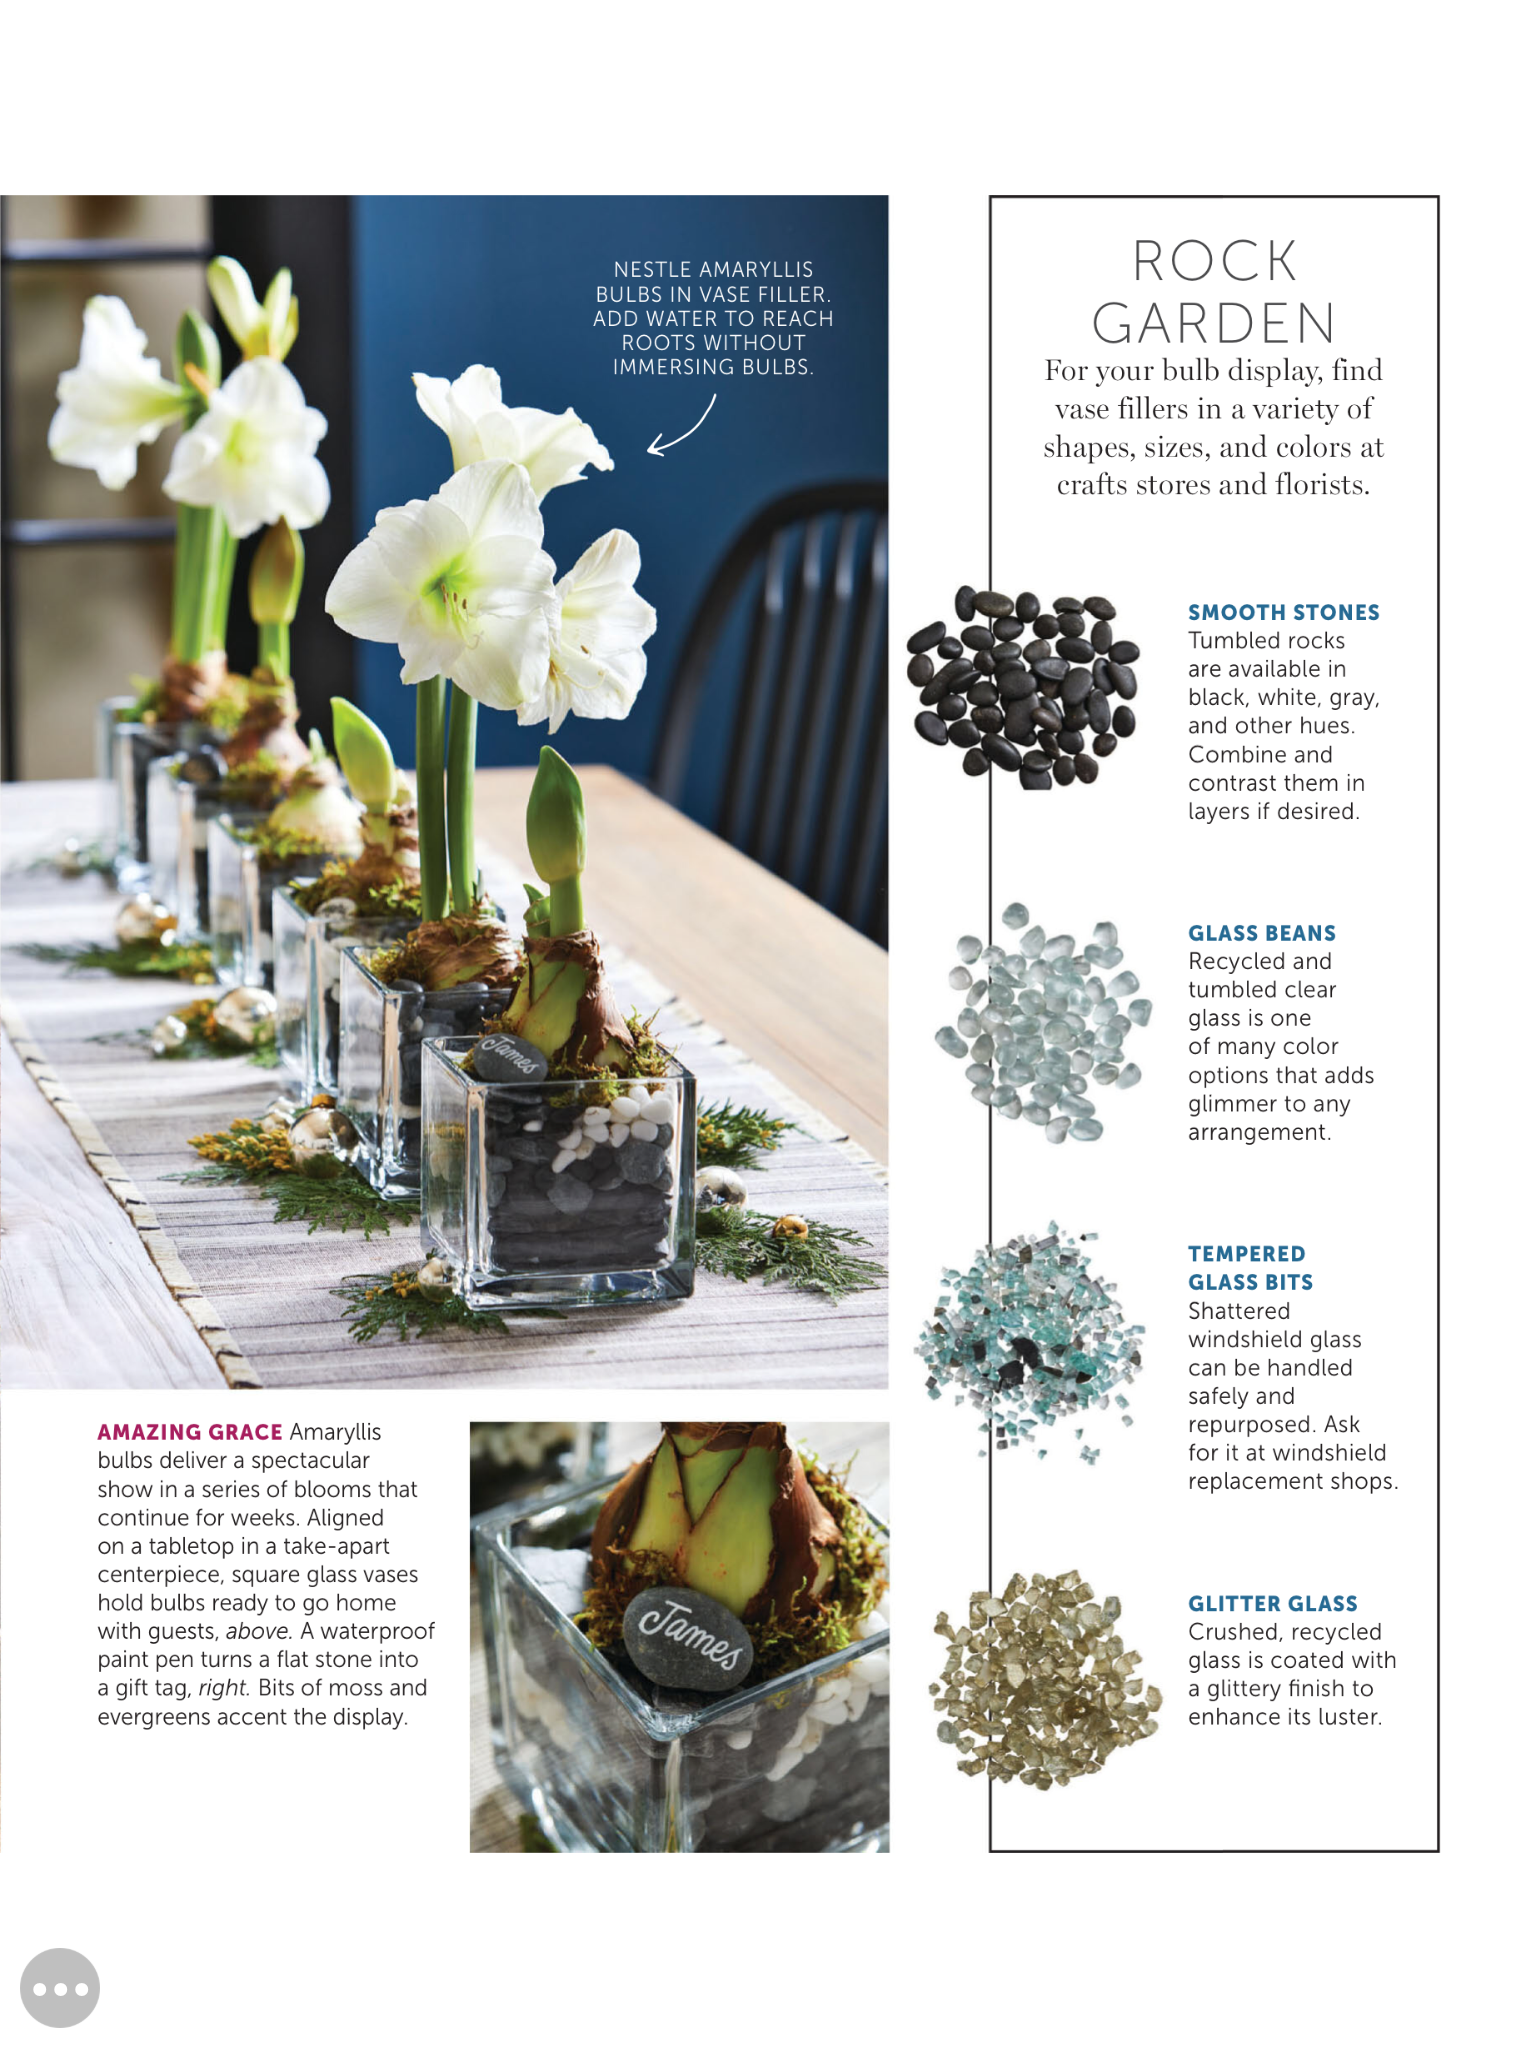 Pin By Leah Kilcup On Gifting Green Gifts Vase Fillers Do It Yourself Magazine